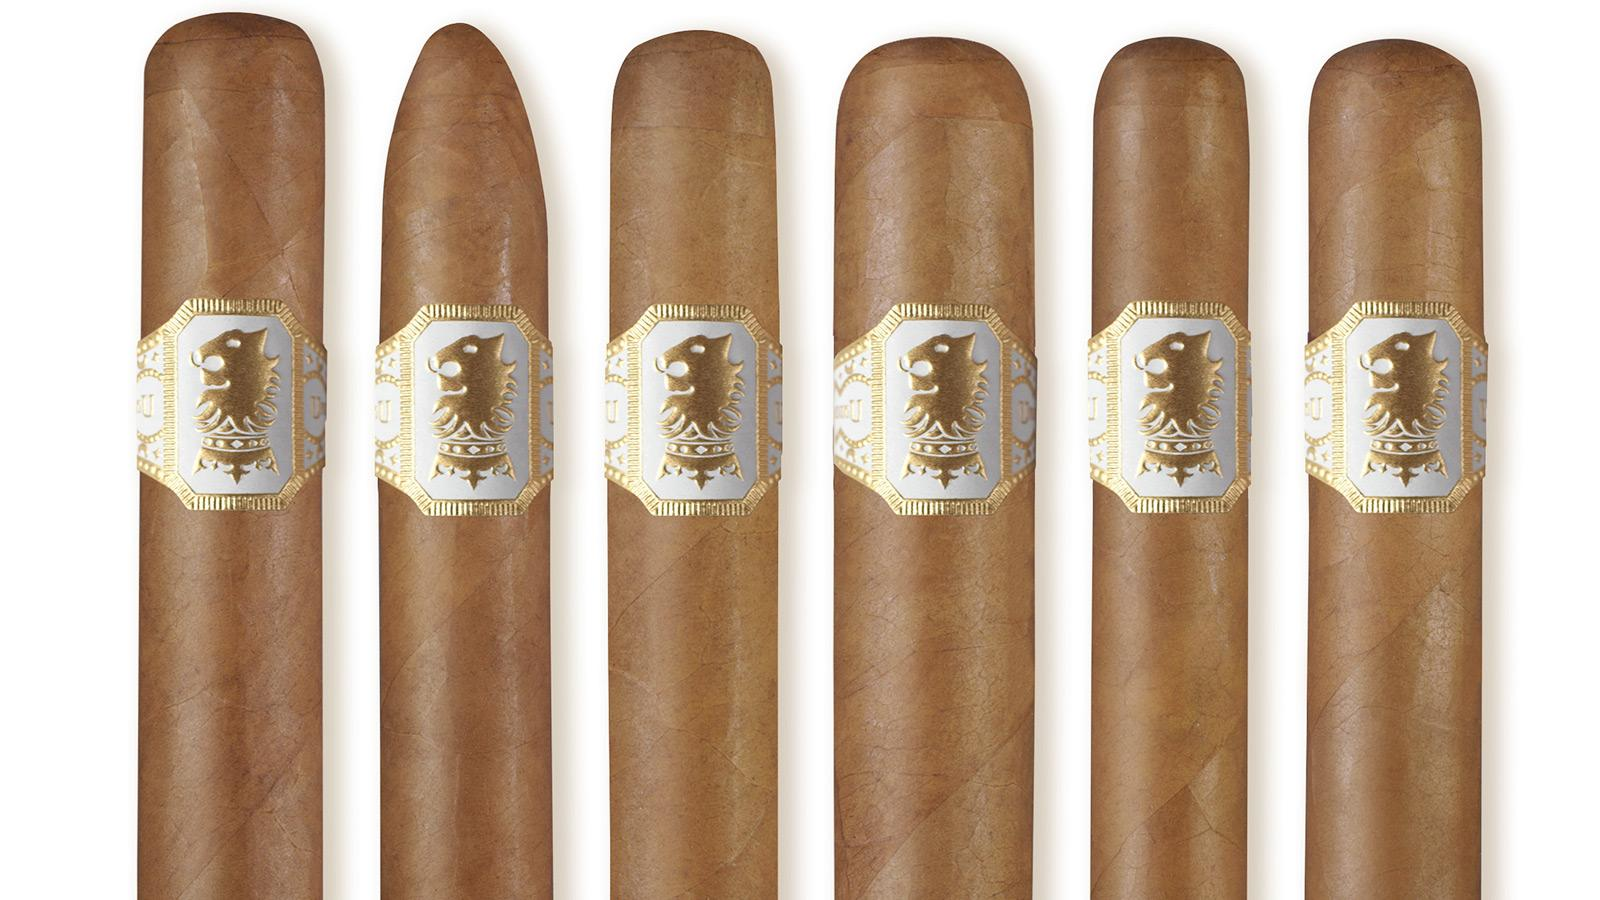 Undercrown Goes Light: Drew Estate Adding Connecticut Version